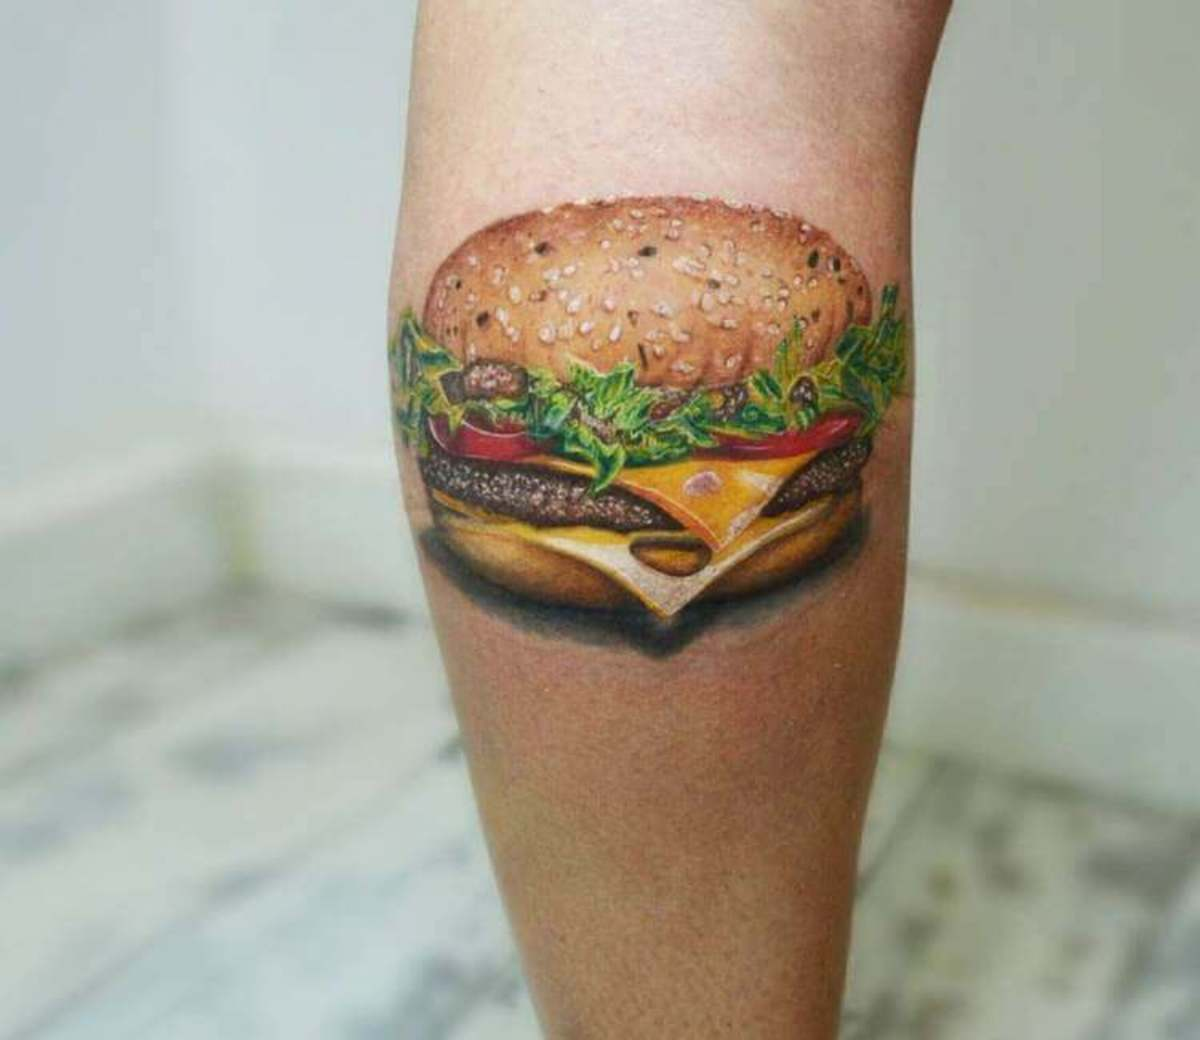 Mmm, who doesn't love Swiss on a burger? Tattoo by Andrea Morales